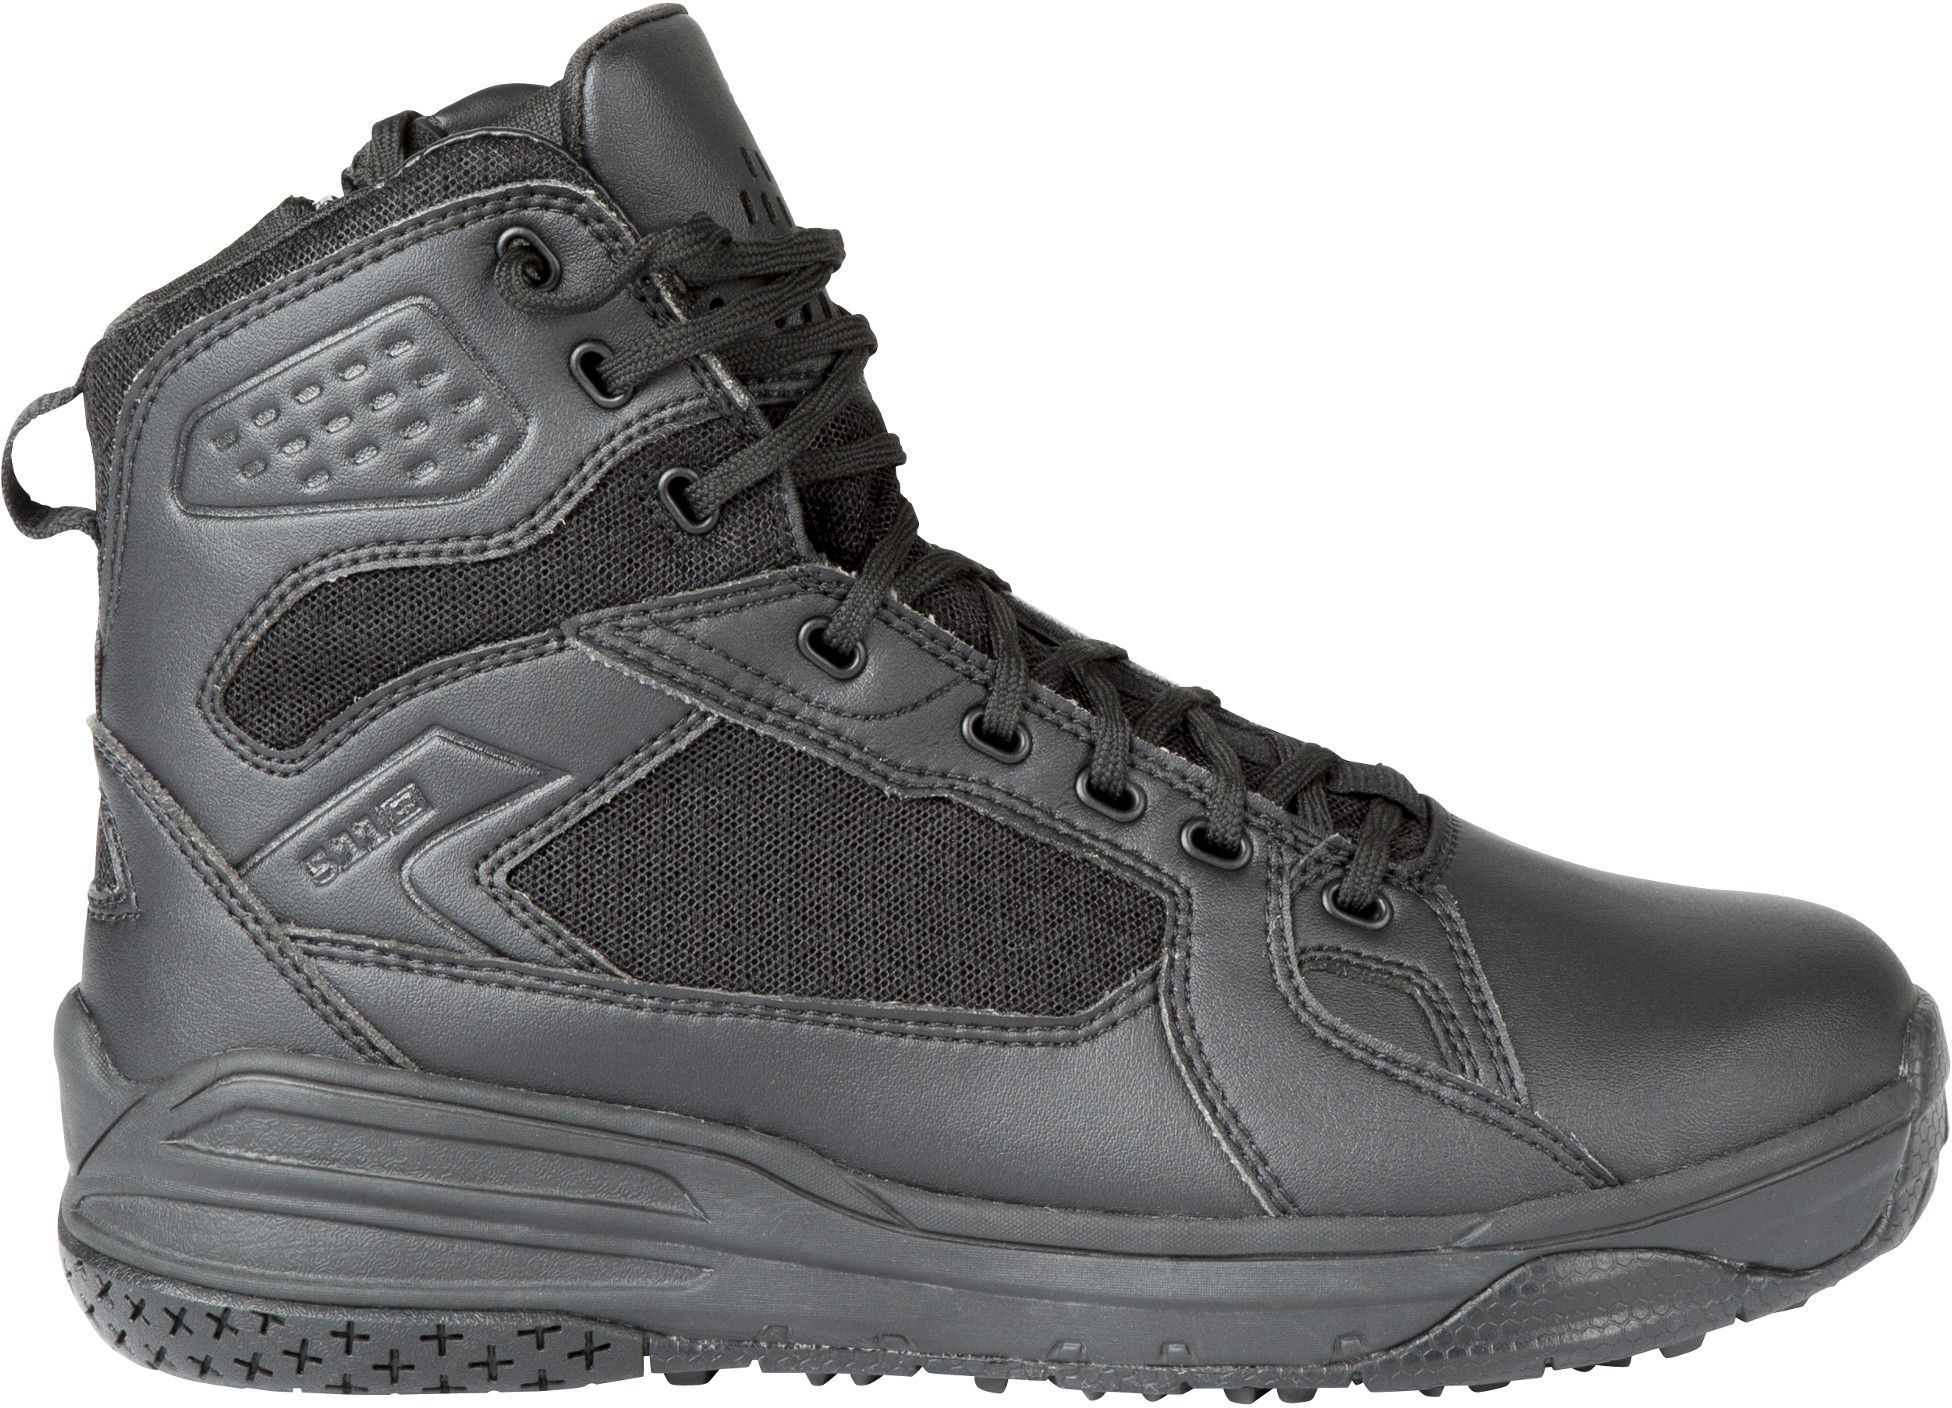 competitive price ce8e7 1869d ... Product Image · 5.11 Tactical Mens Halcyon Patrol Boots ... Nike Air  Force 1 High (SWAT)309655-001 .